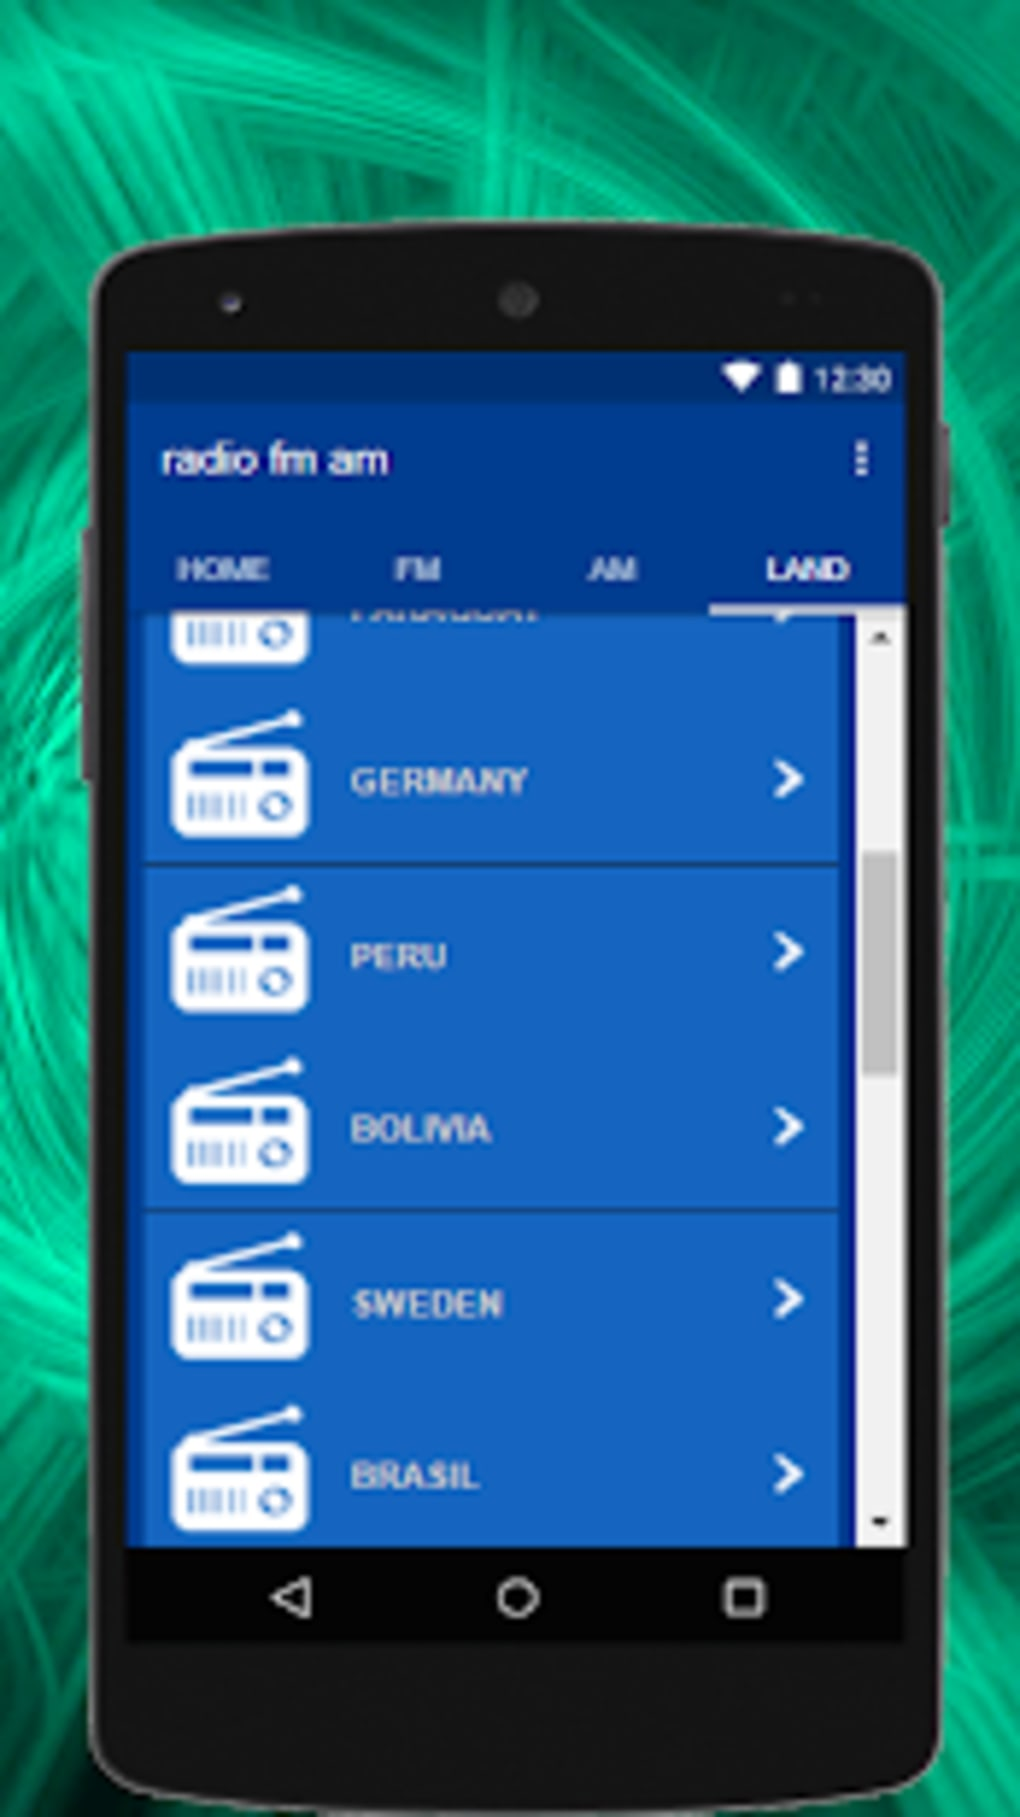 free fm radios without internet for Android - Download